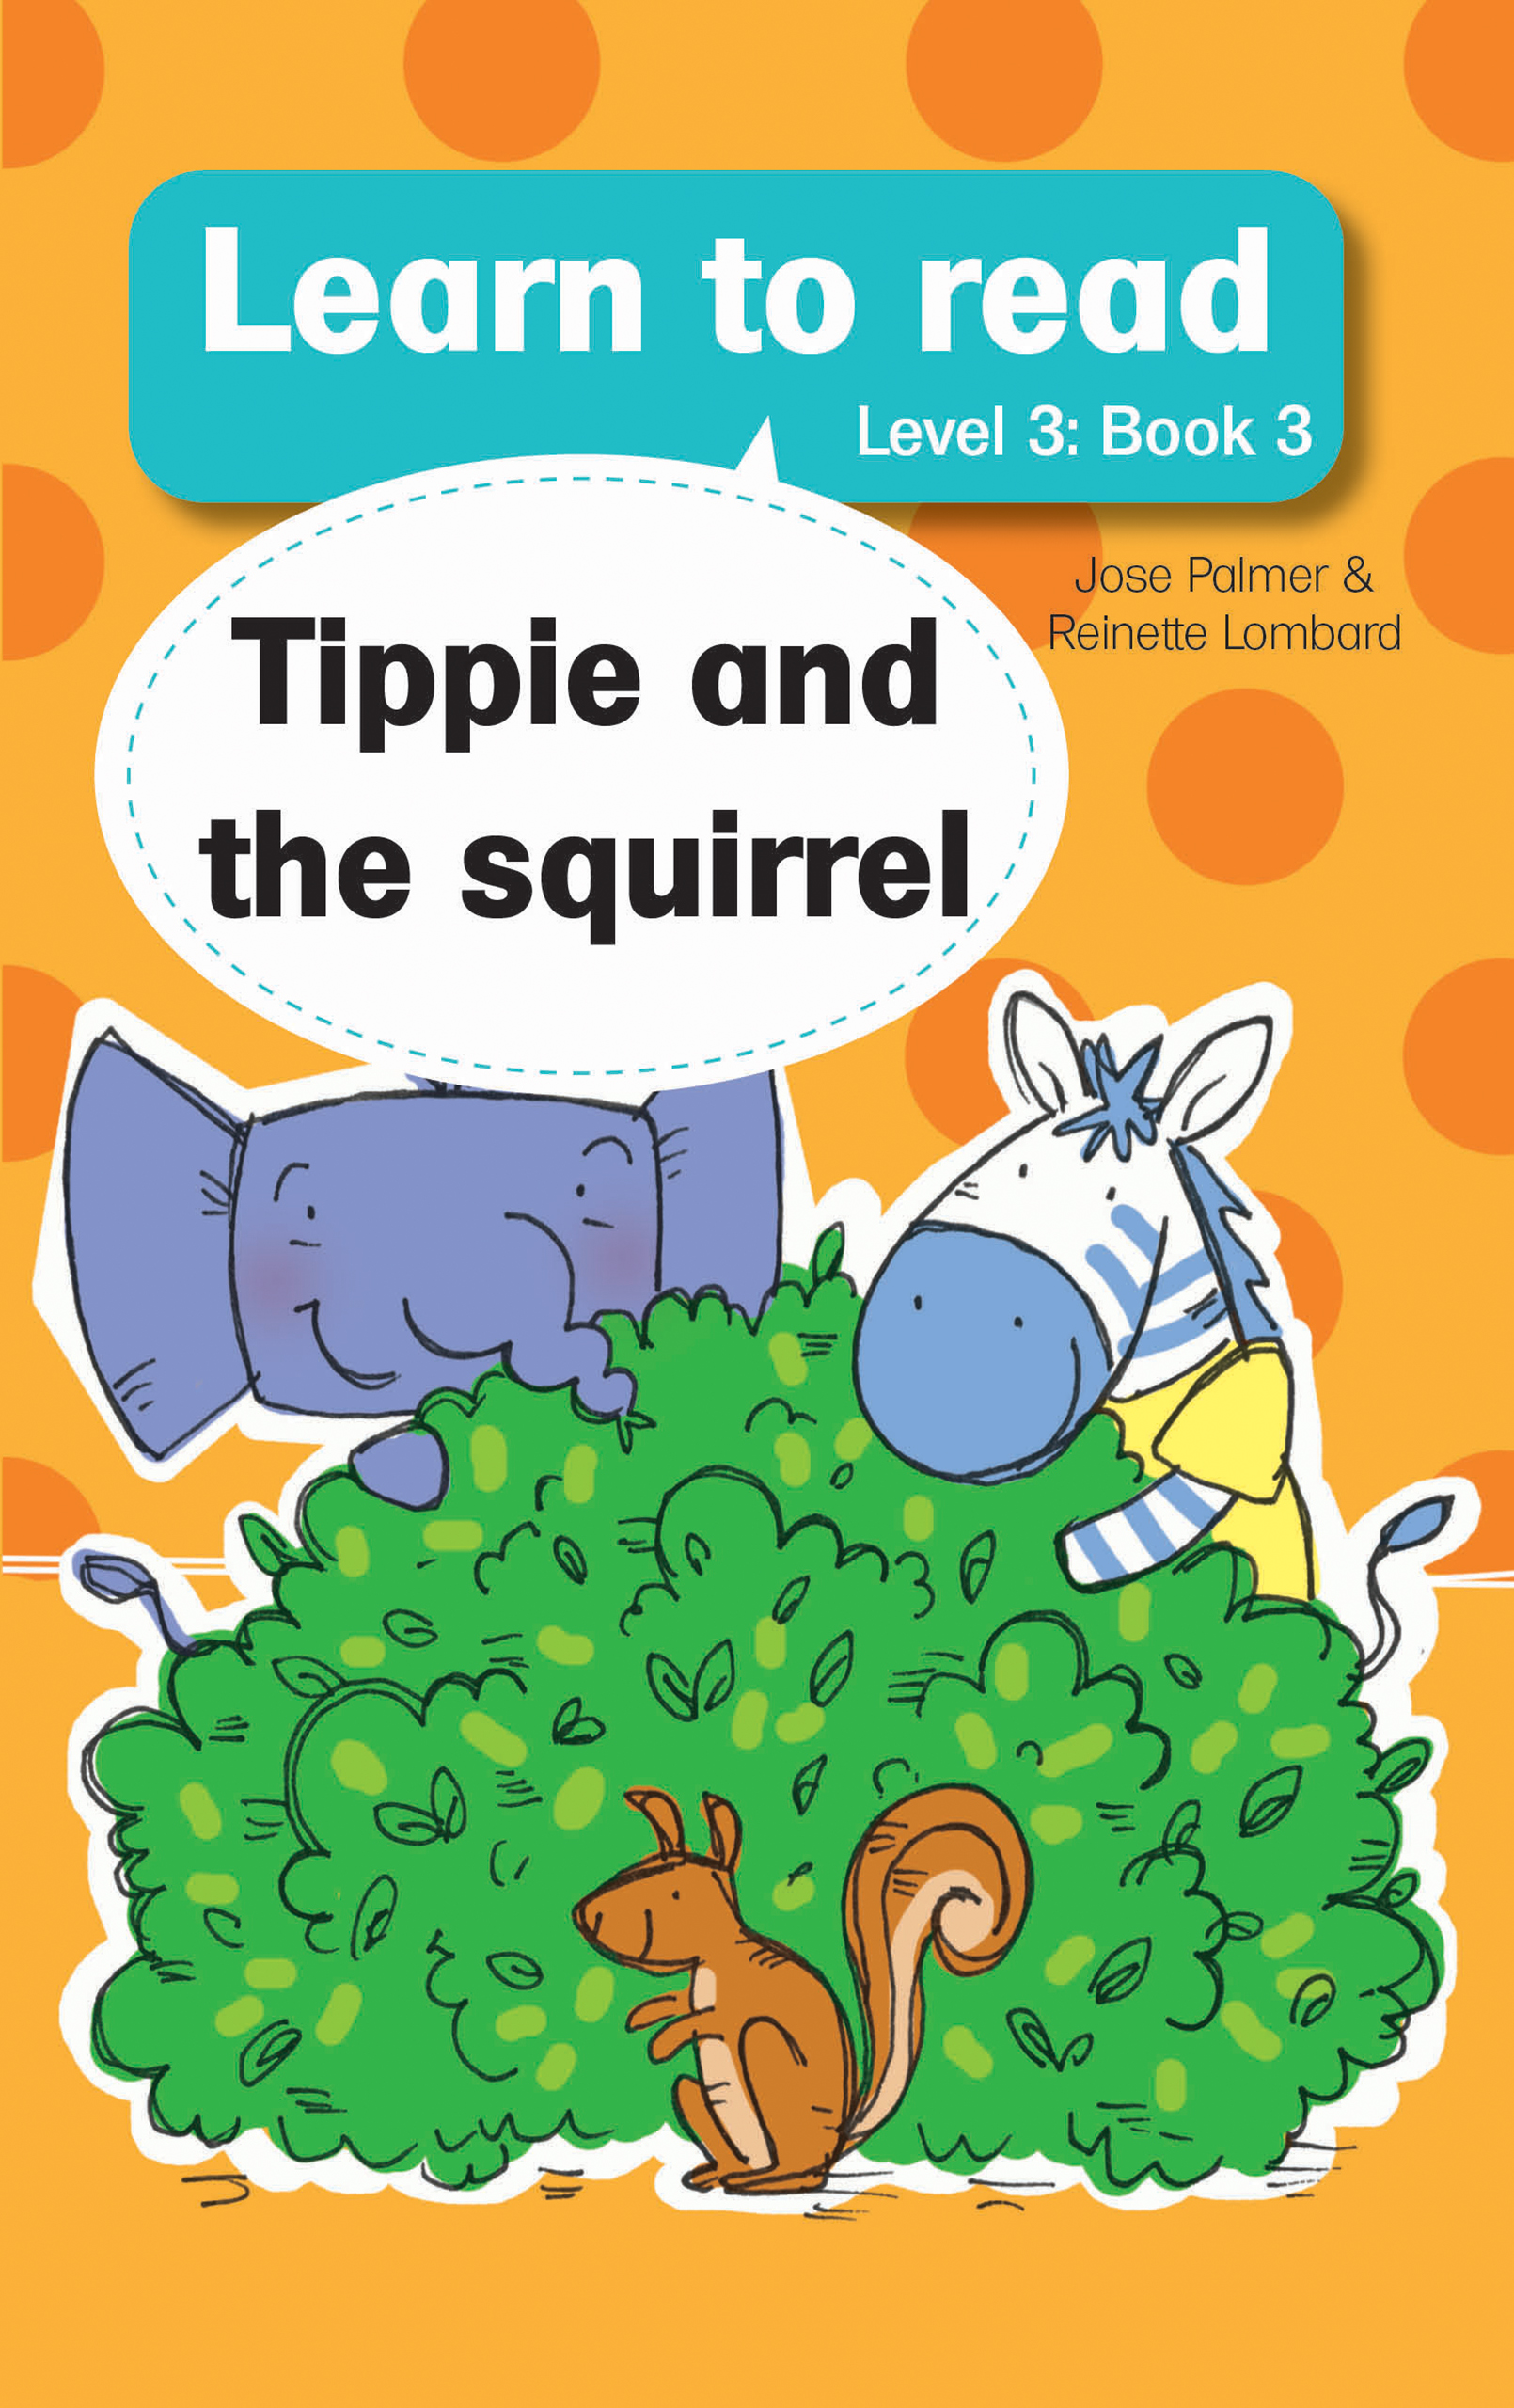 Tippie and the Squirrel